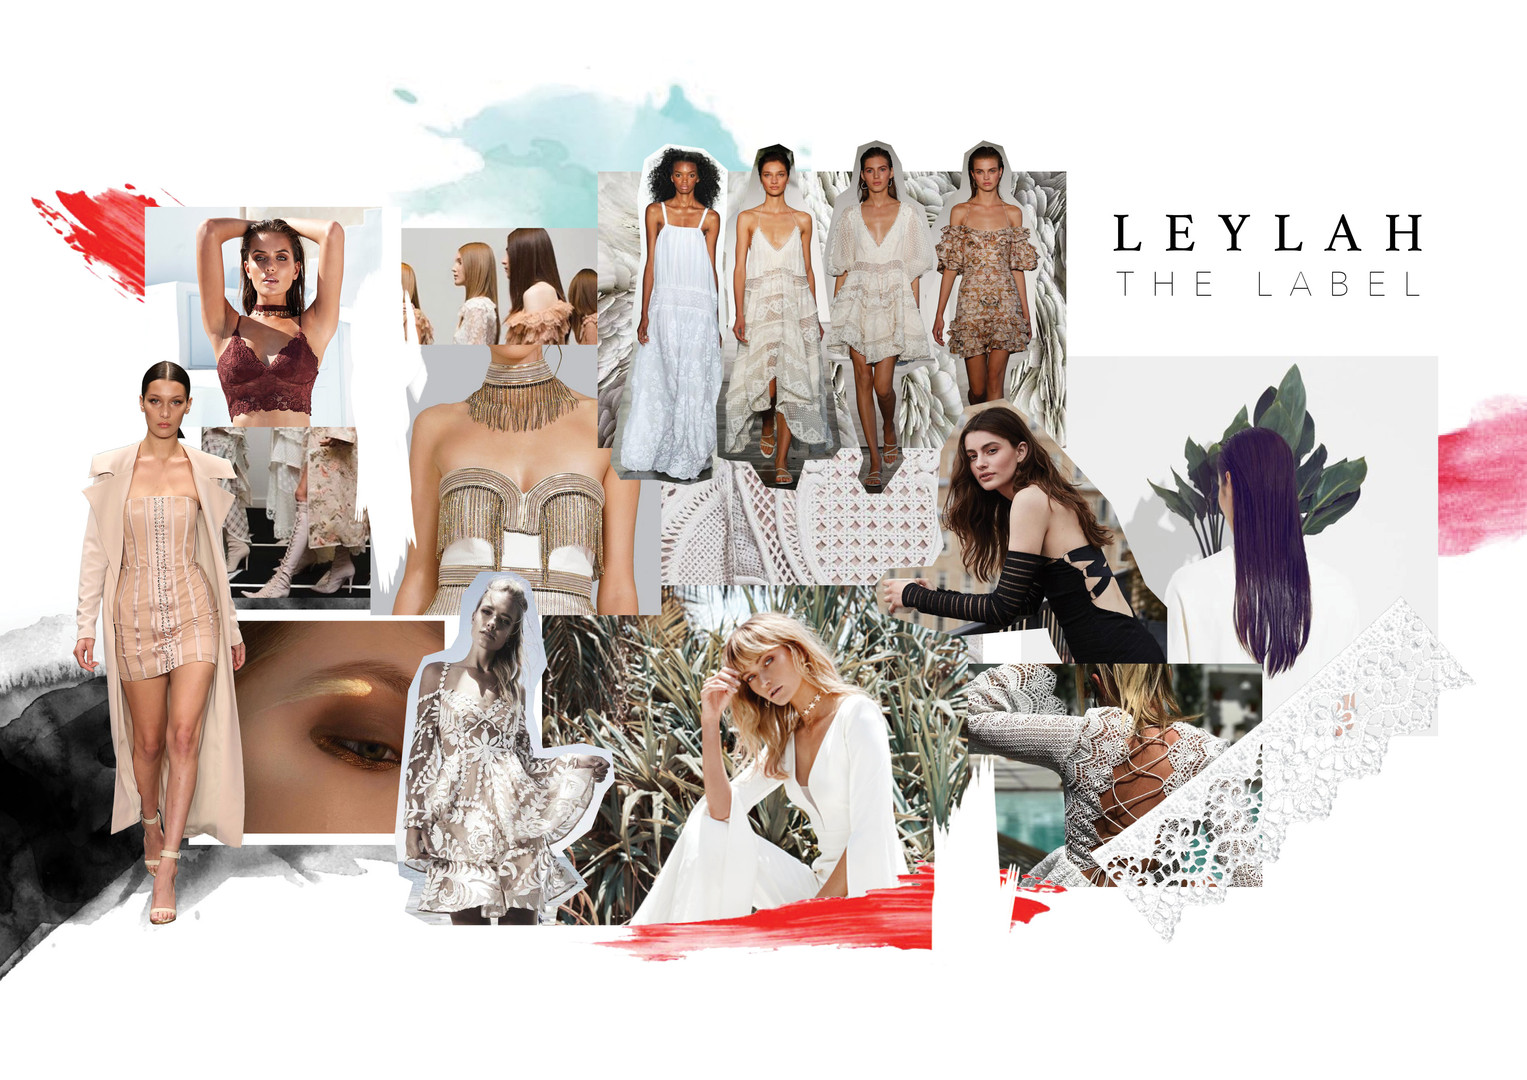 leylah the label moodboard 3.jpg